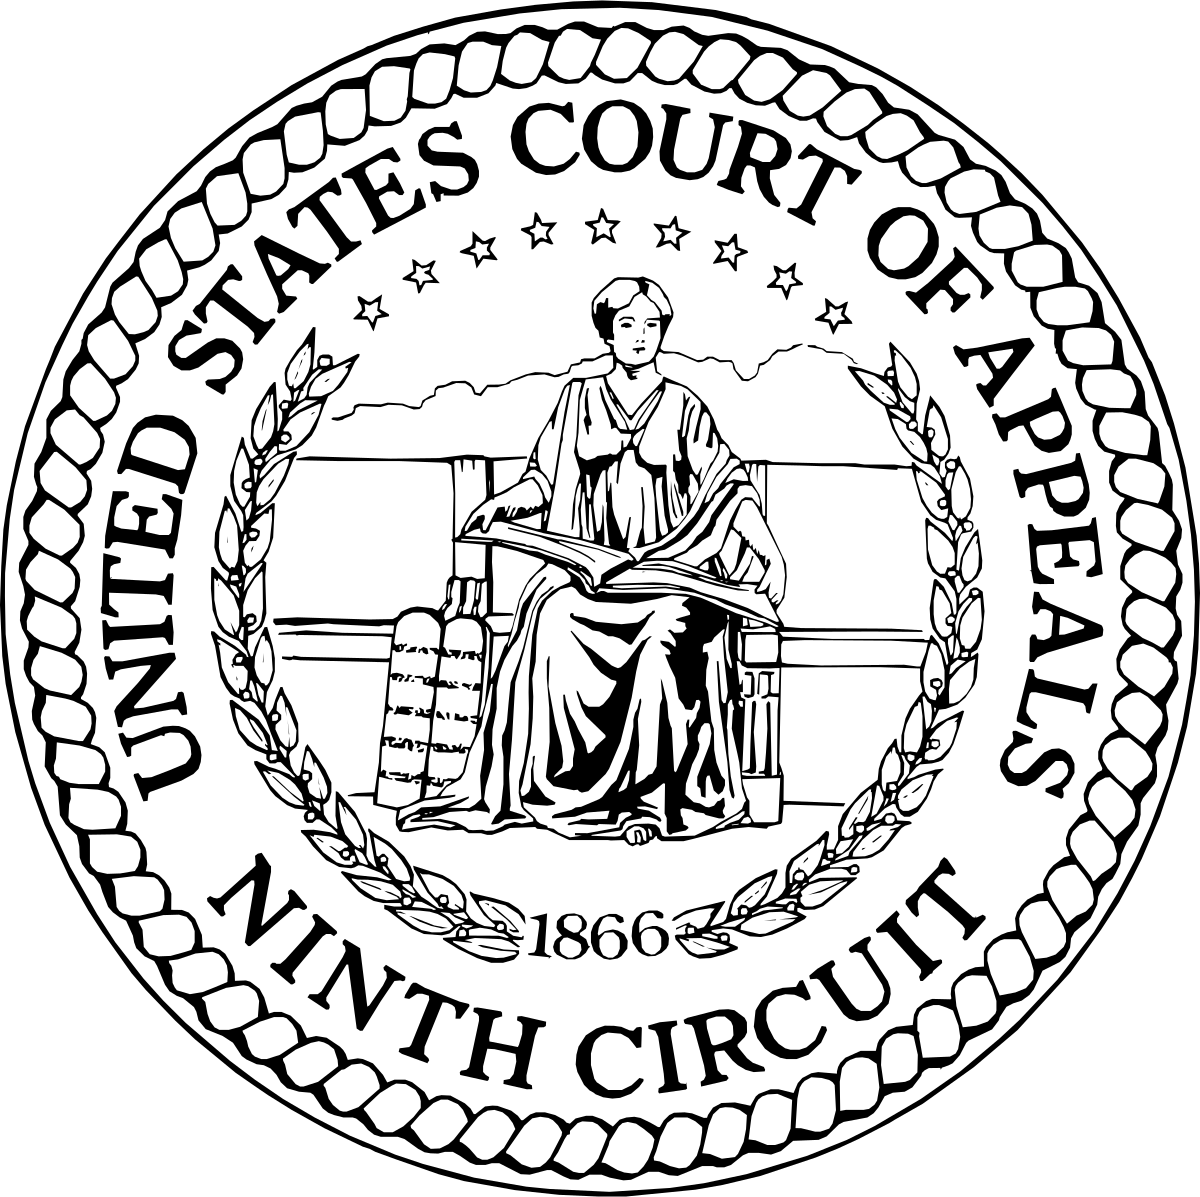 Ninth Circuit Attempts to Moot Rule 11 Petition by Deciding DACA Appeal